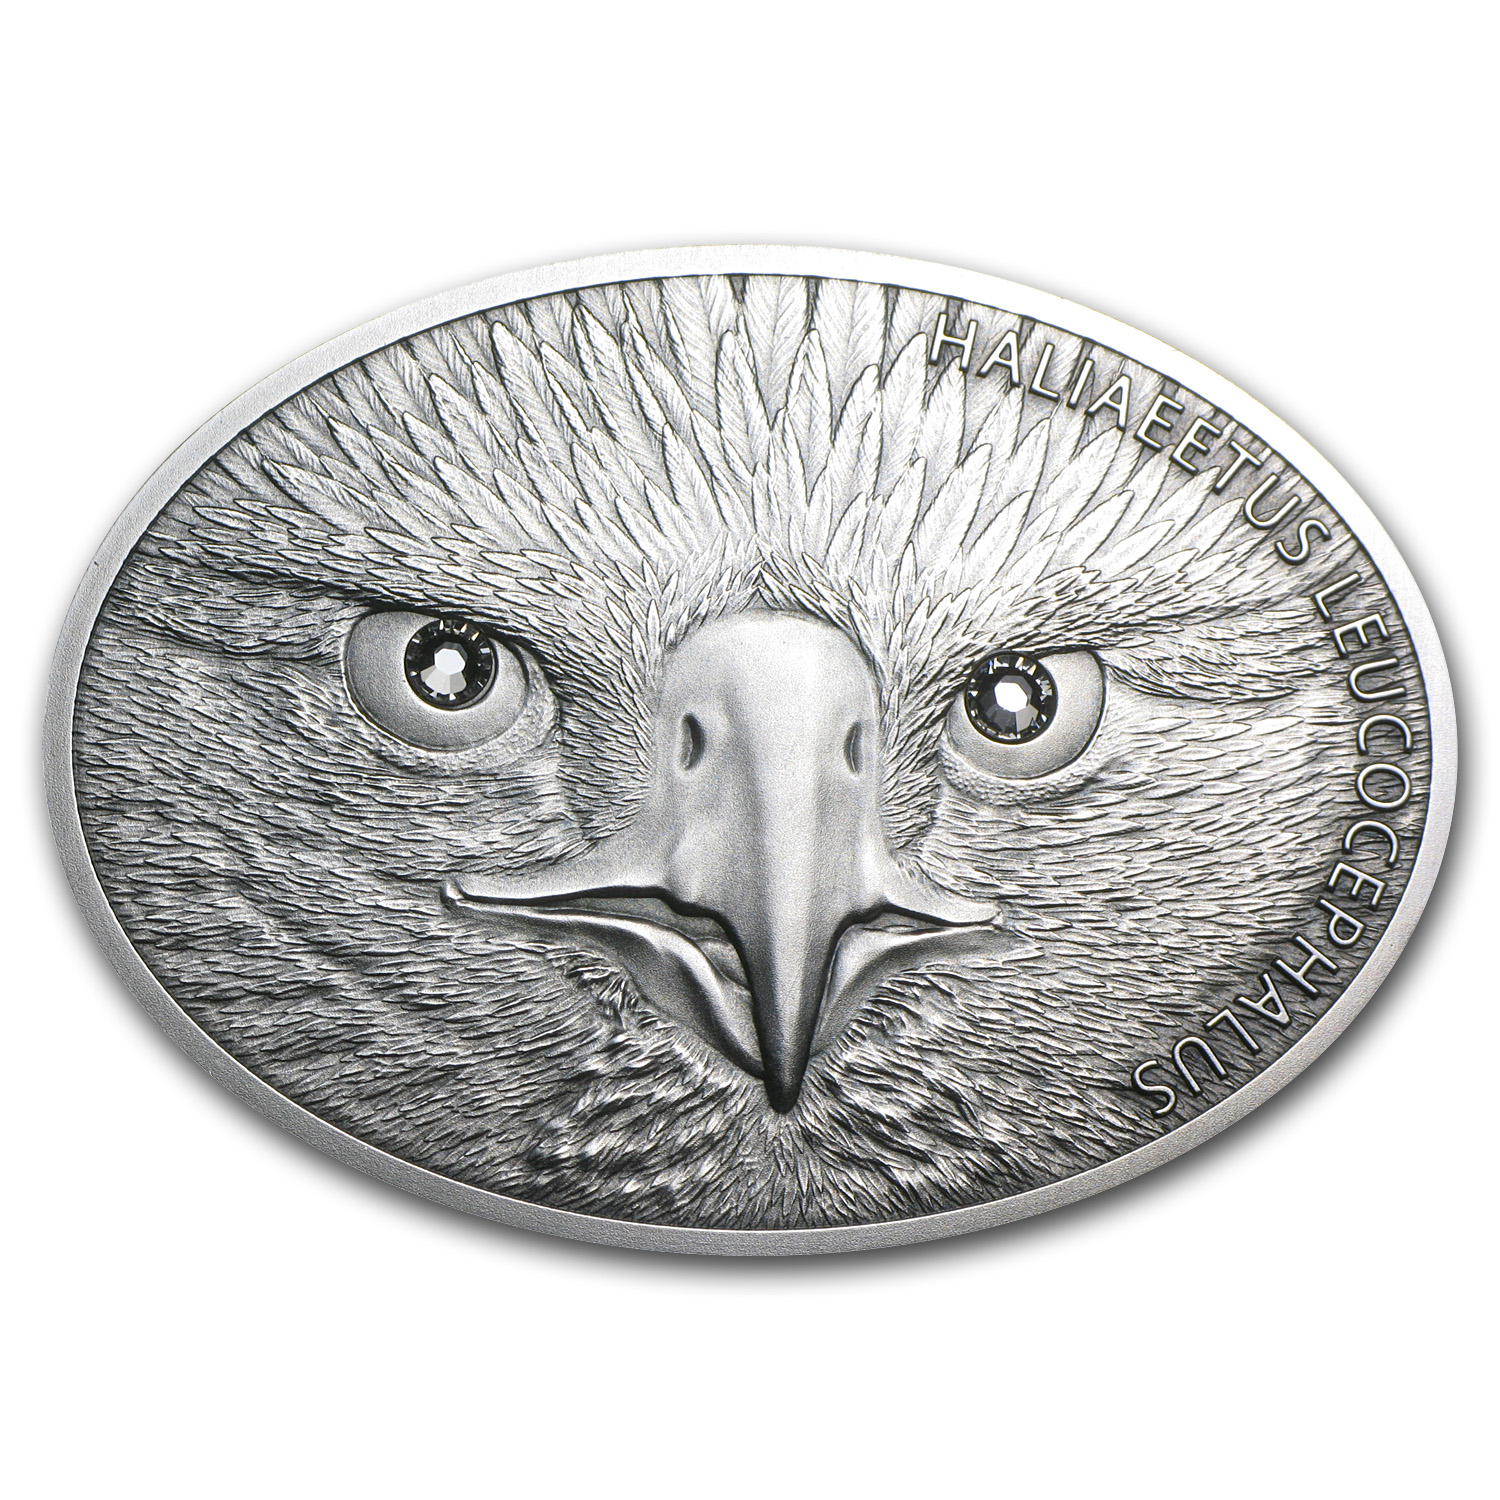 Fiji 2013 1 oz Silver $10 Fascinating Wildlife - Bald Eagle